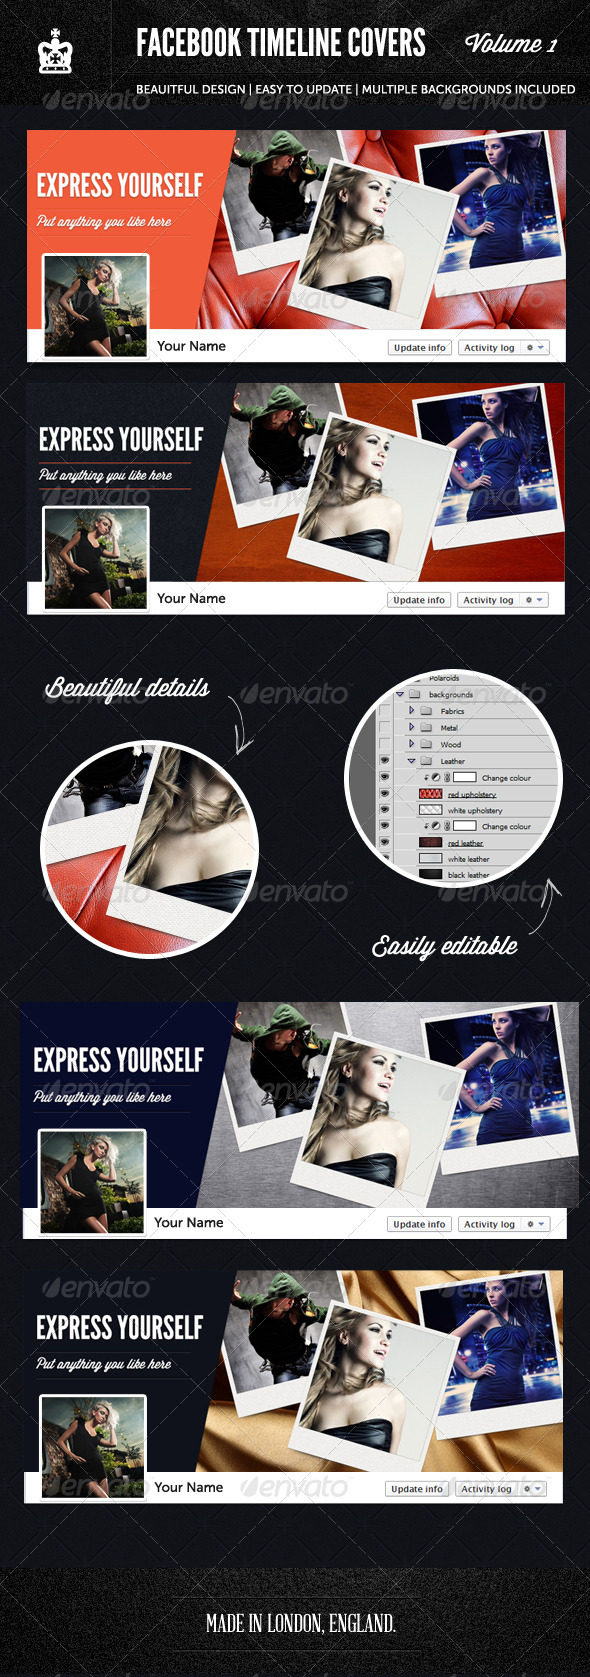 GraphicRiver Facebook Timeline Covers 1st Edition 2453578